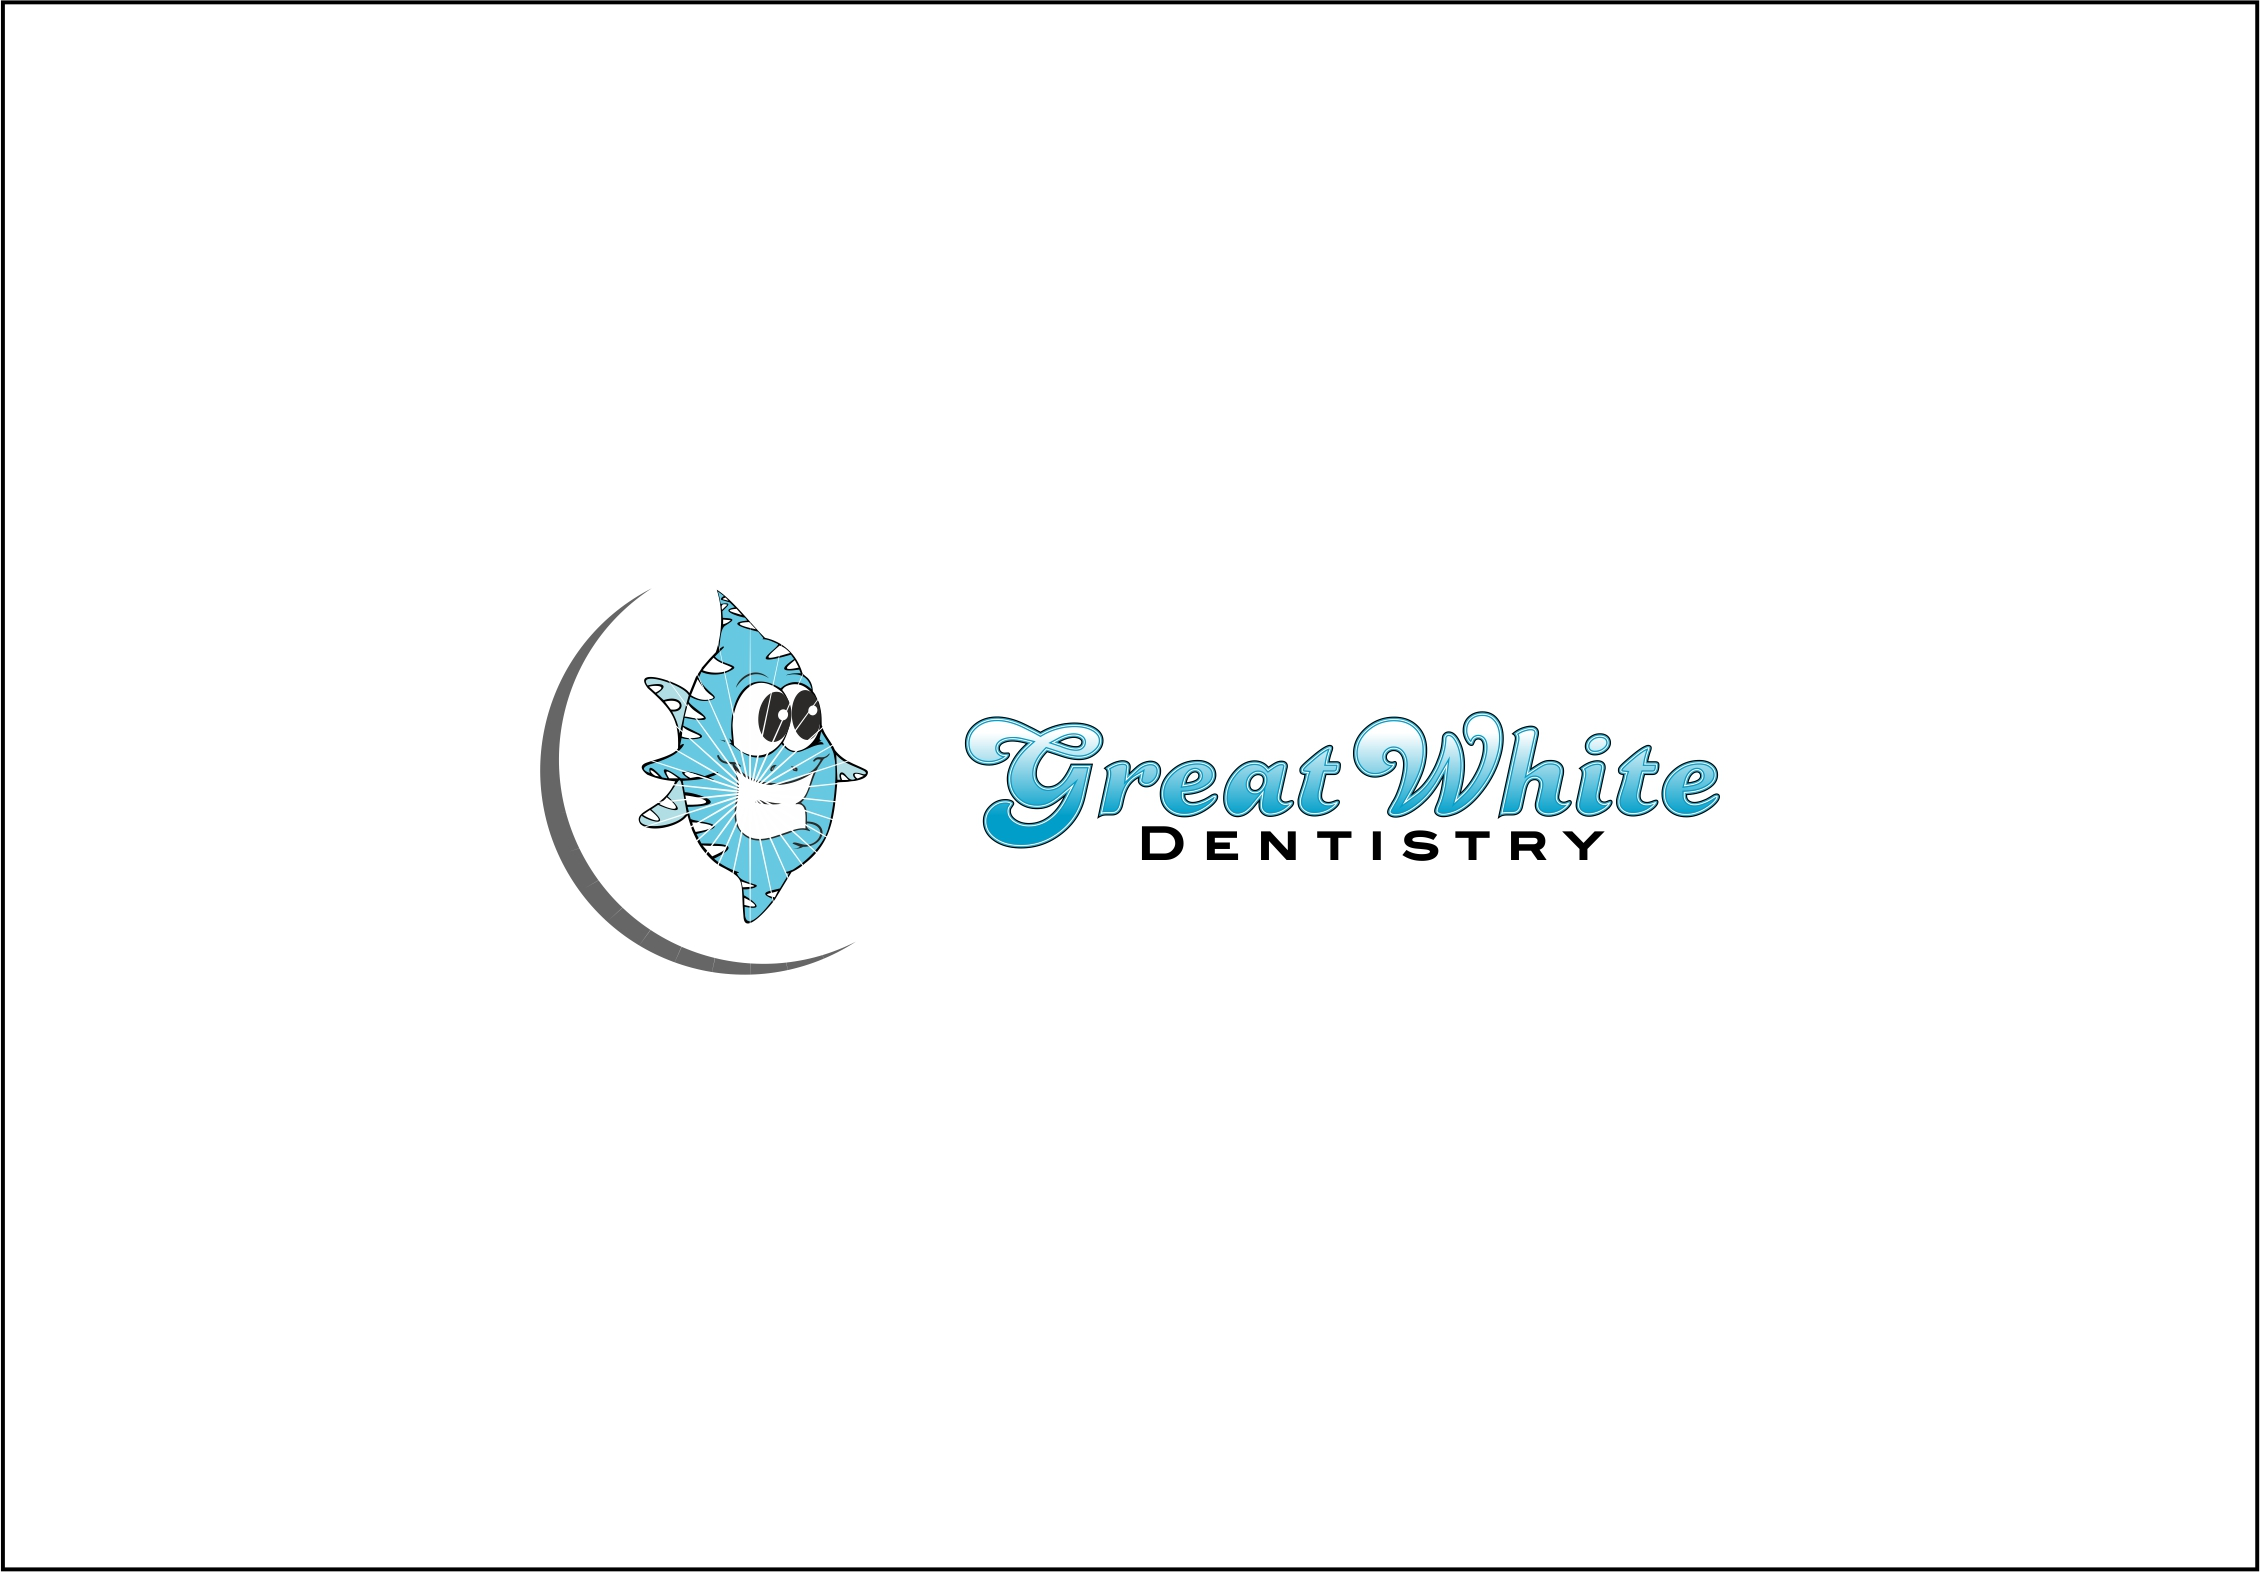 Logo Design by Fatih Ercan - Entry No. 9 in the Logo Design Contest Logo Design for Great White Dentistry.